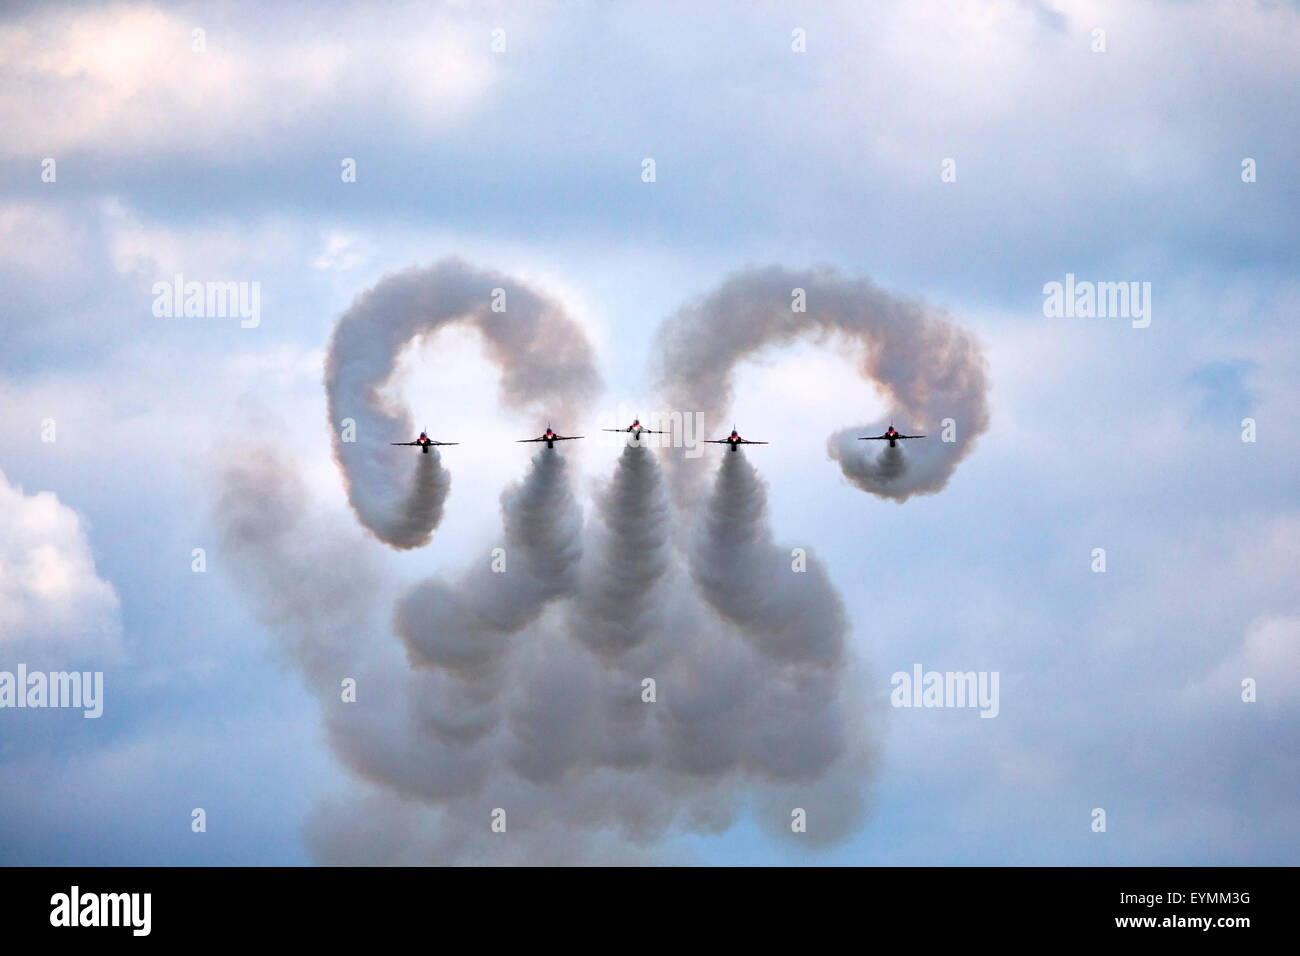 The Red Arrows air display team demonstrating their new manoeuvre - Cobra at the Battle of Britain 75th Anniversary - Stock Image